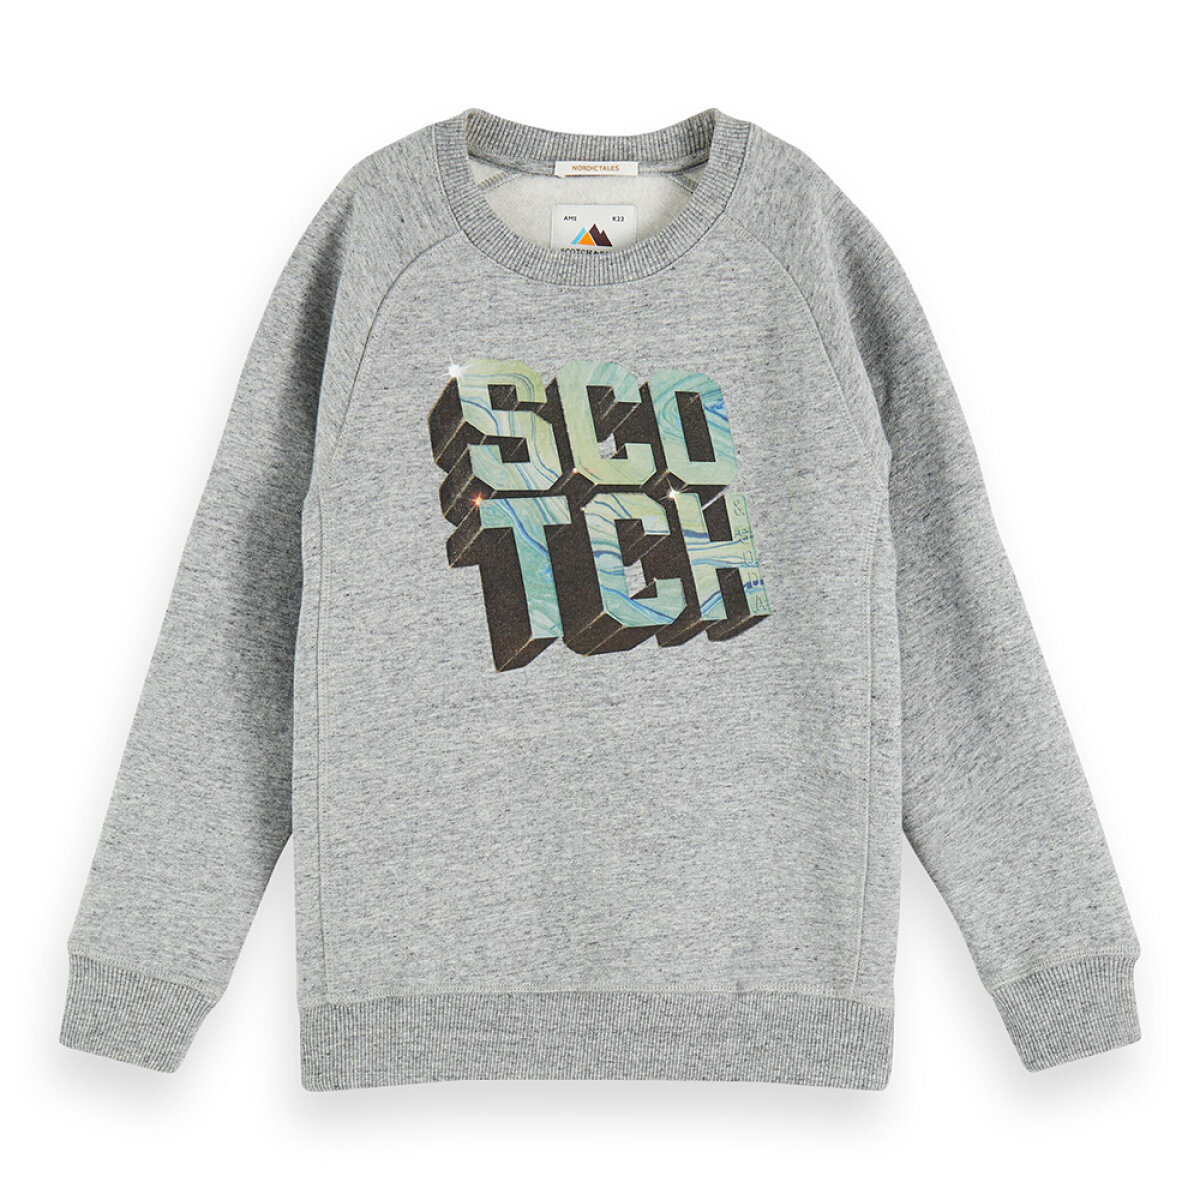 Scotch & Soda jongens sweater 157690 grijs